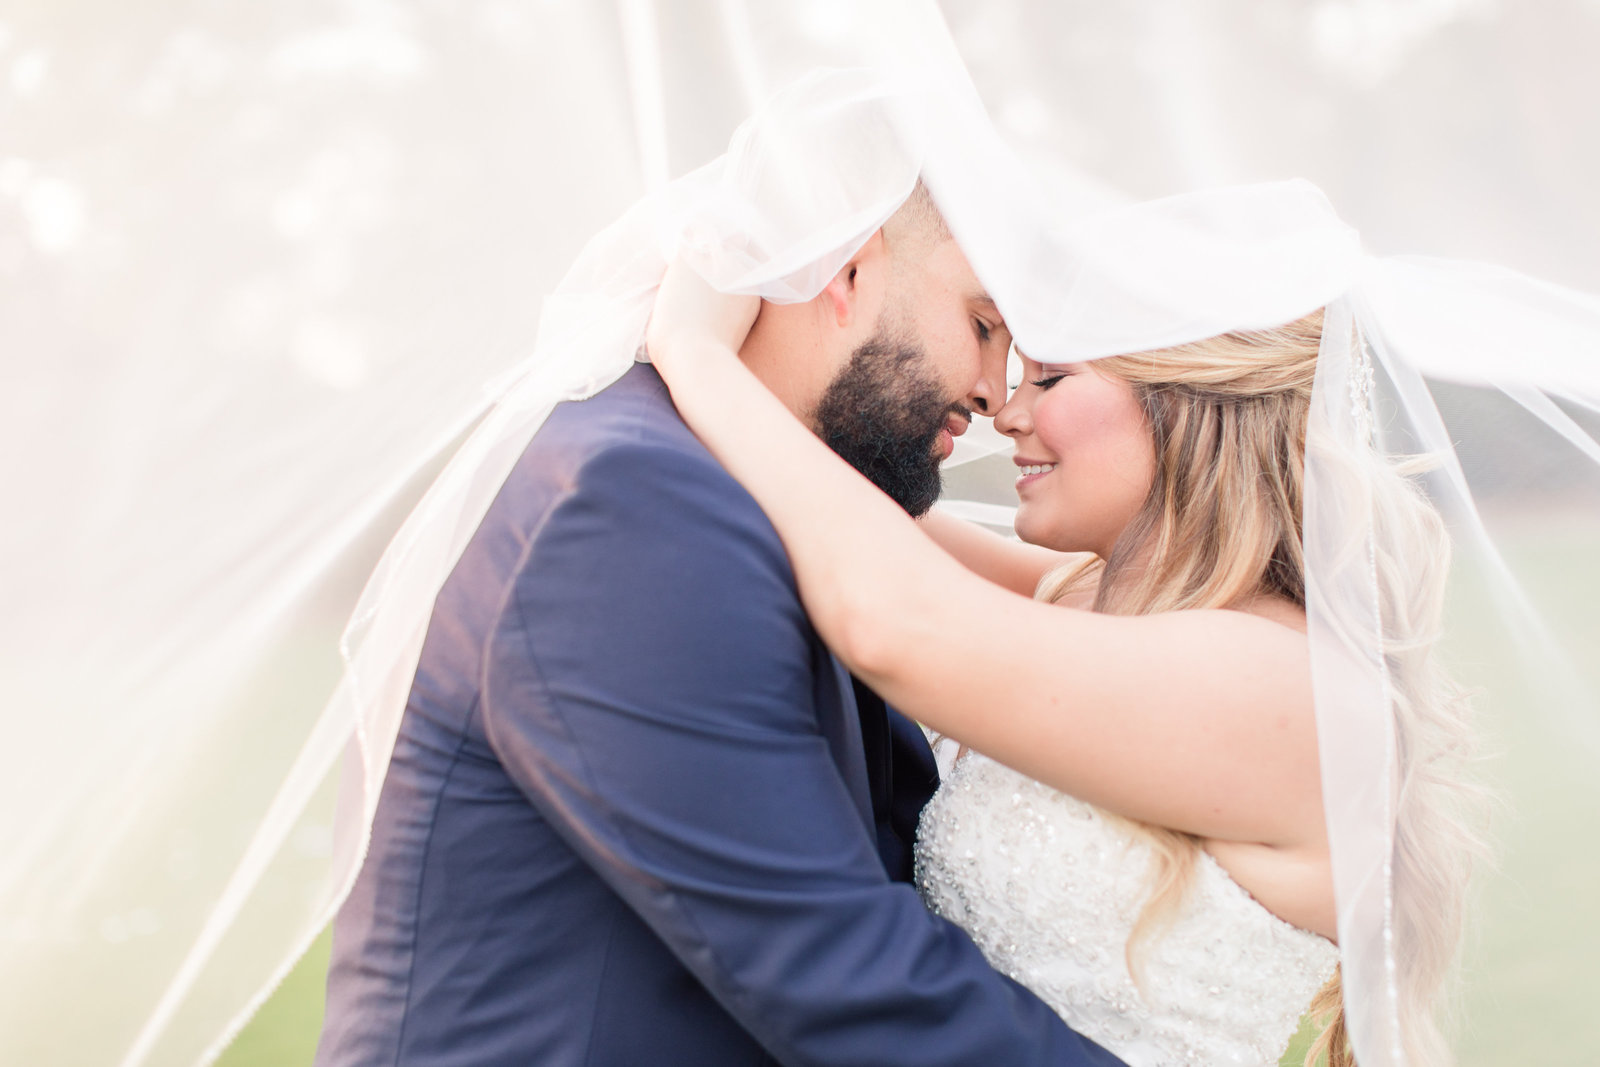 Jennifer_B_Photography-Pinehurst_Club-Pinehurst_NC-Wedding_Day-Caleb___Miranda-JB_Favs-2019-0219